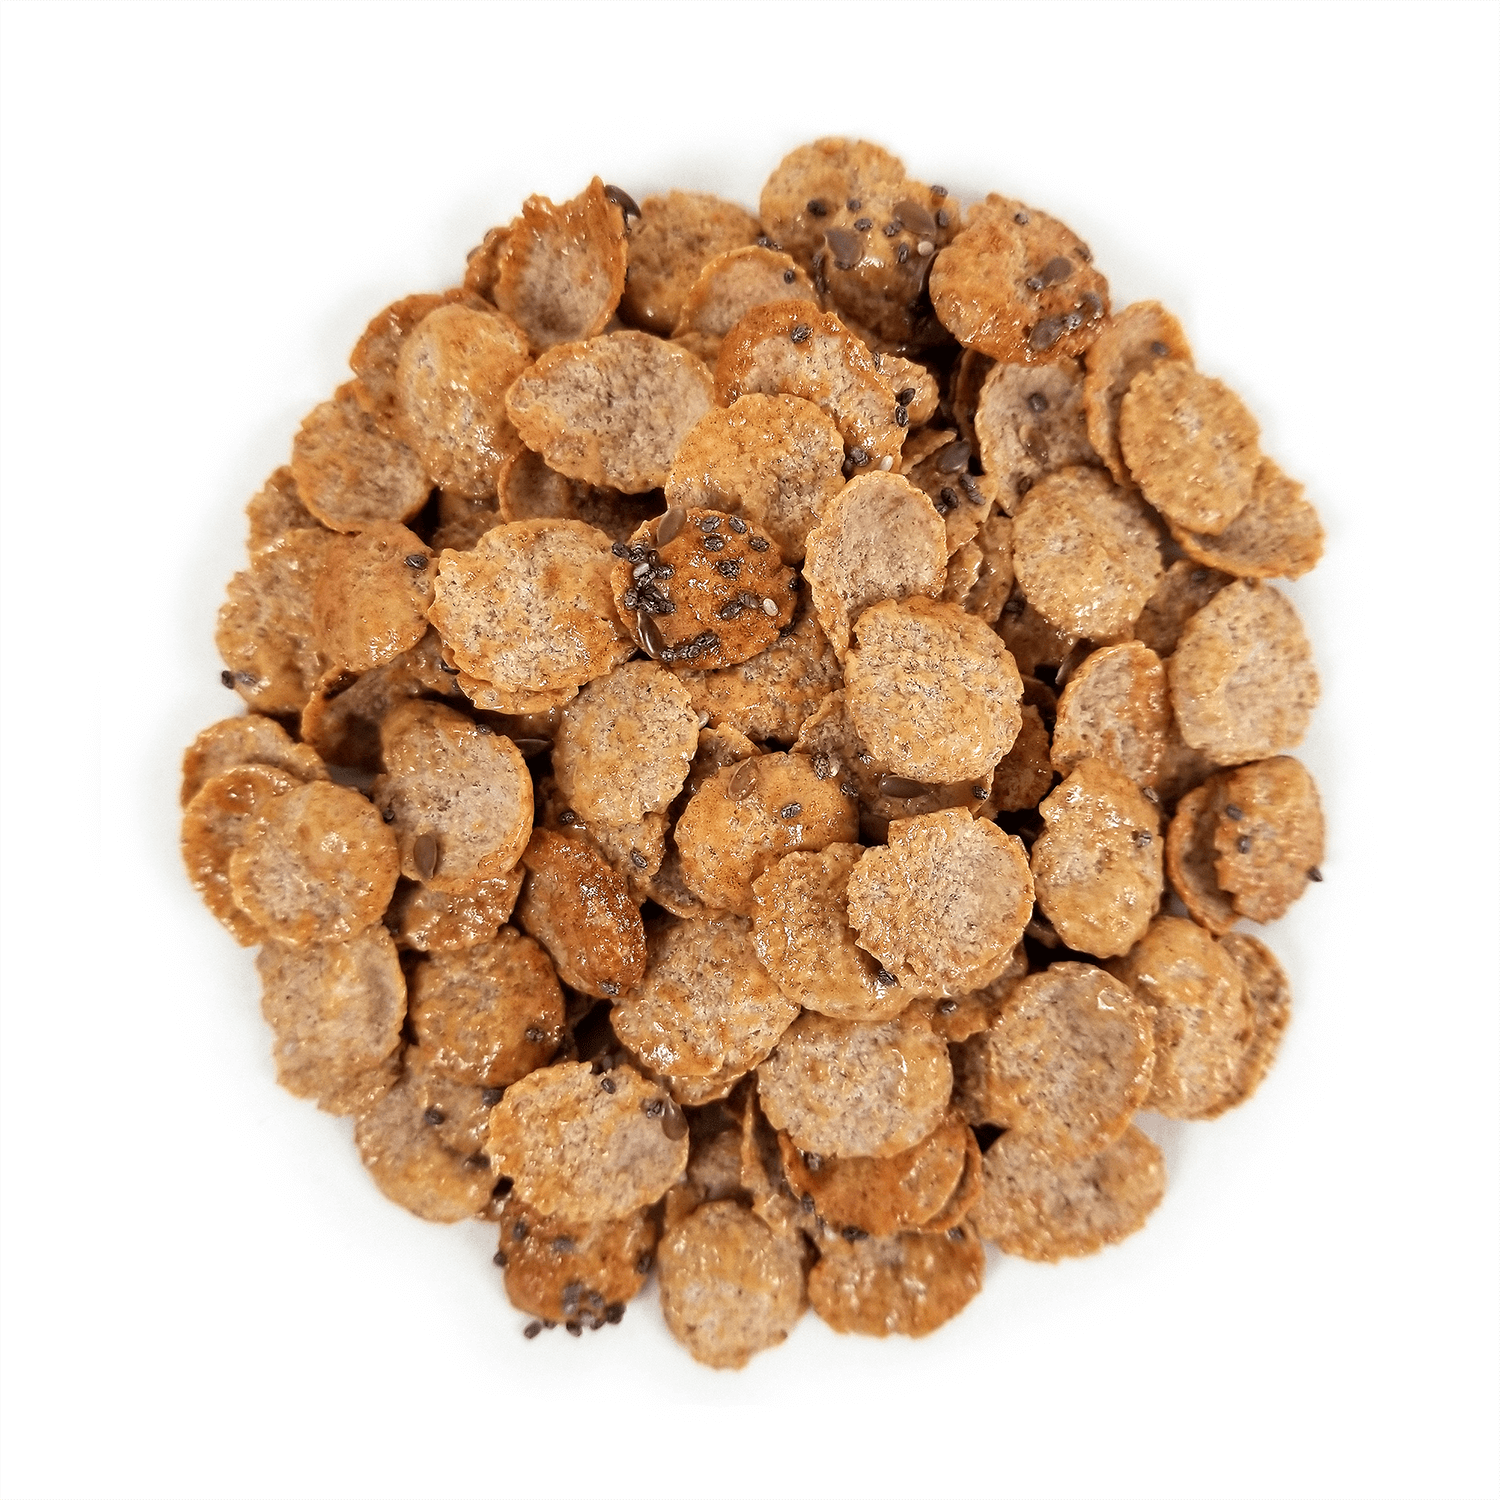 Sprouted Whole Grain Flakes